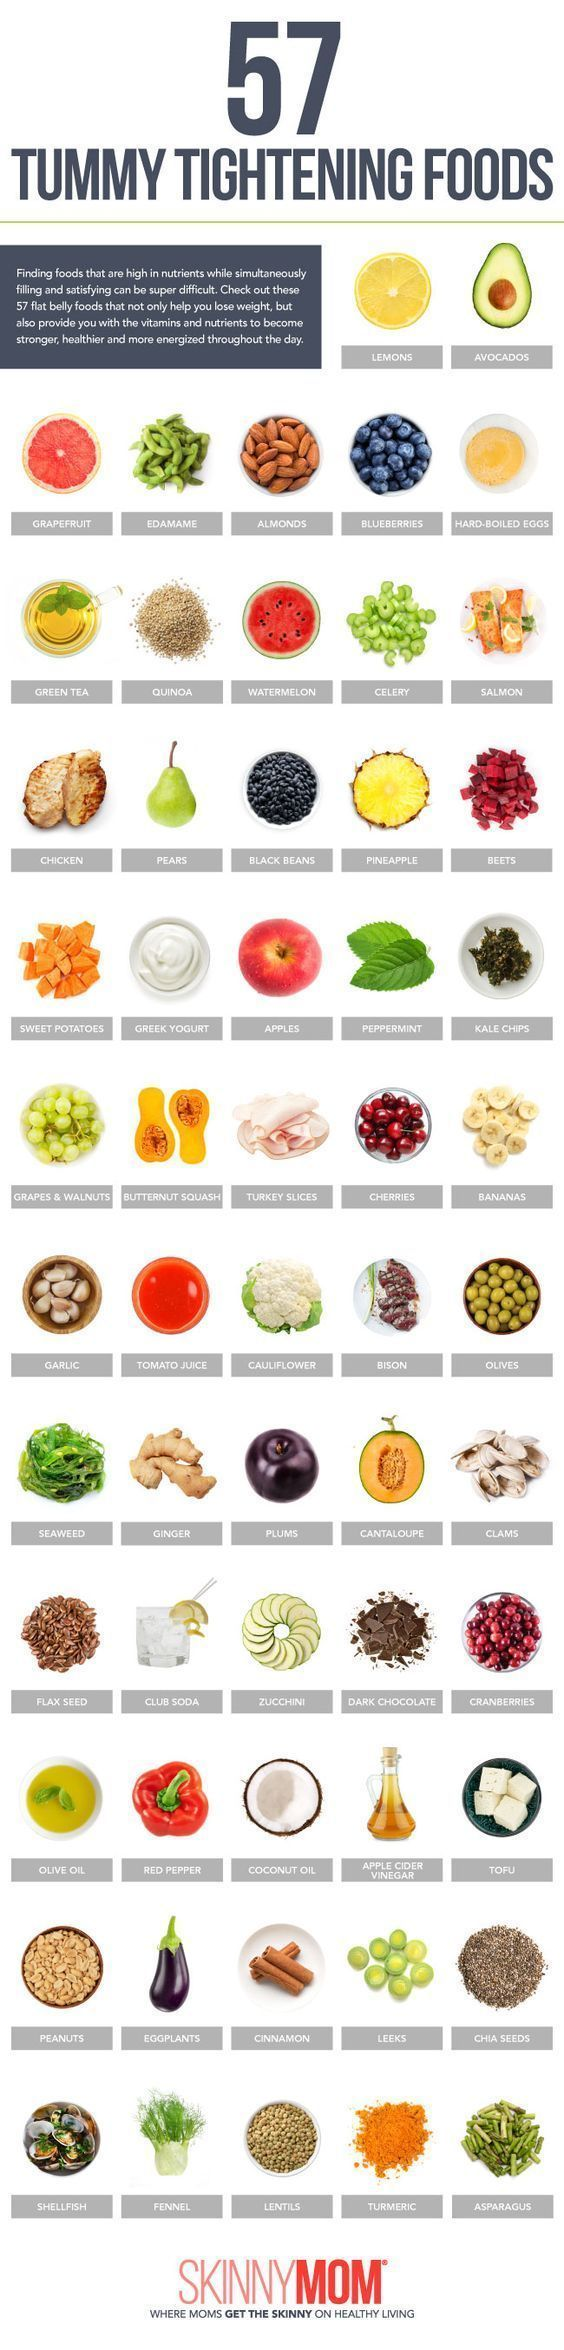 57 Tummy Tightening Foods [INFOGRAPHIC] #healthyliving